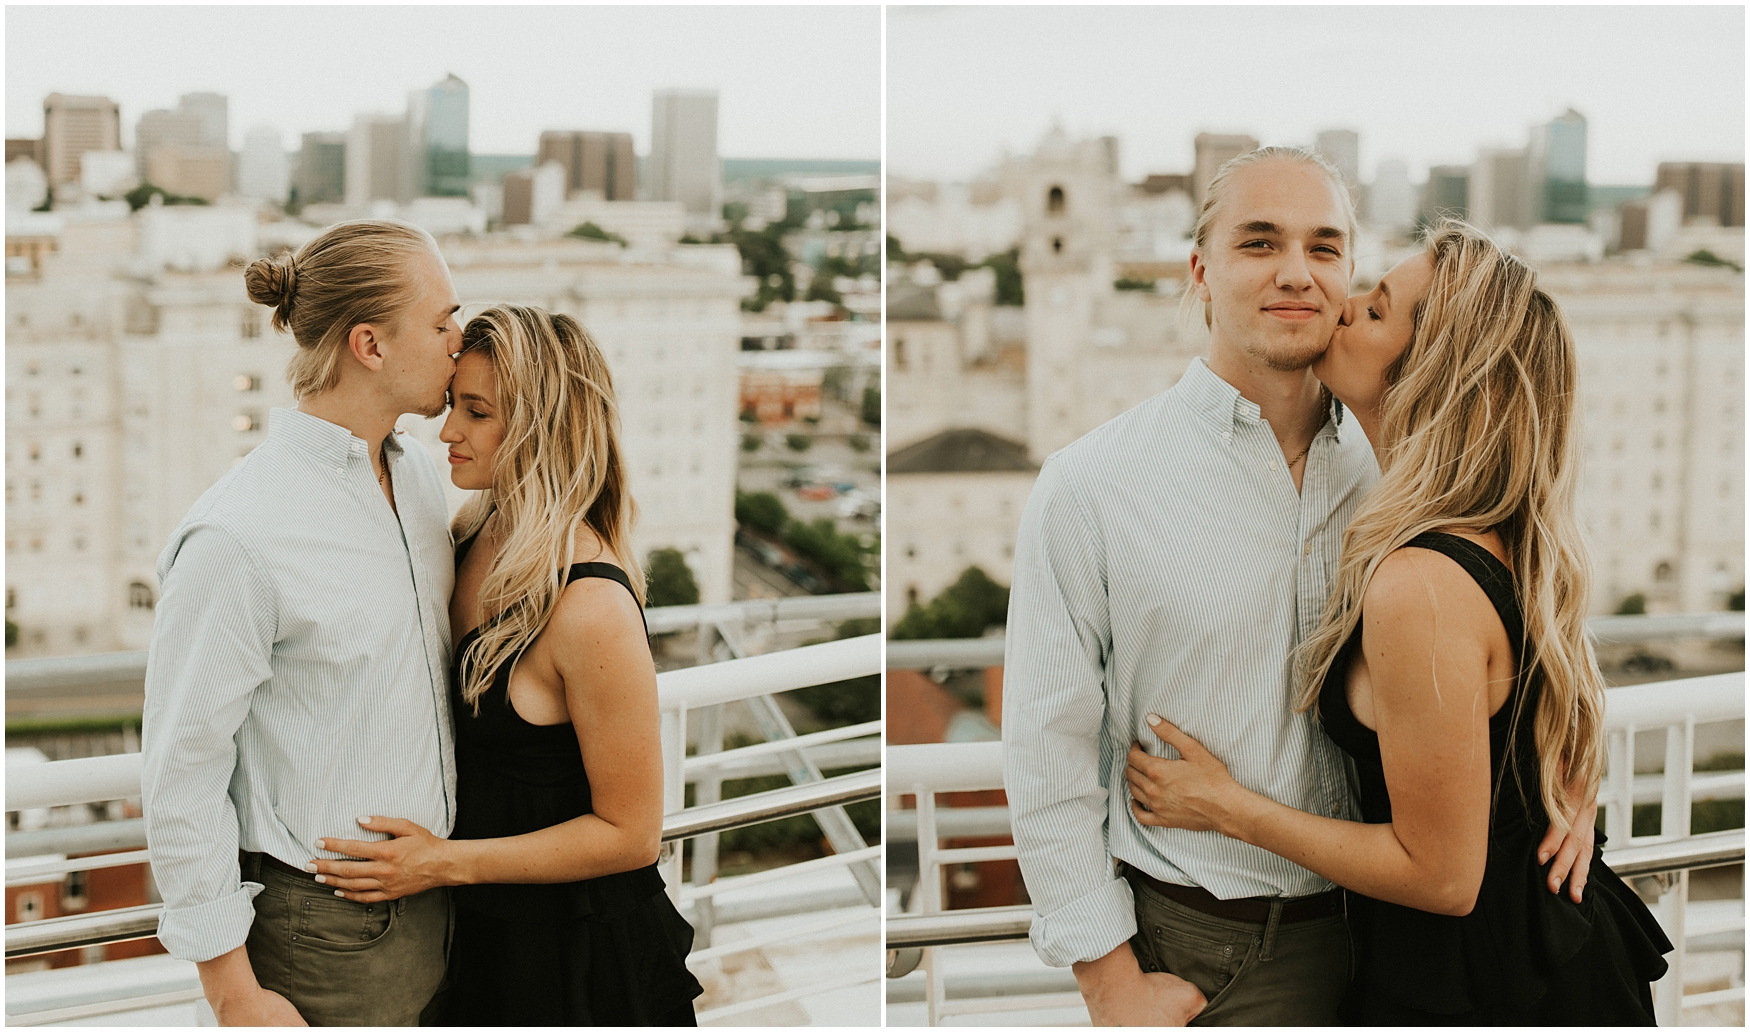 Hannah_Baldwin_Photography_RoofTop_Richmond_Virginia_Couples_Session_The_Graduate_RVA_0242.jpg